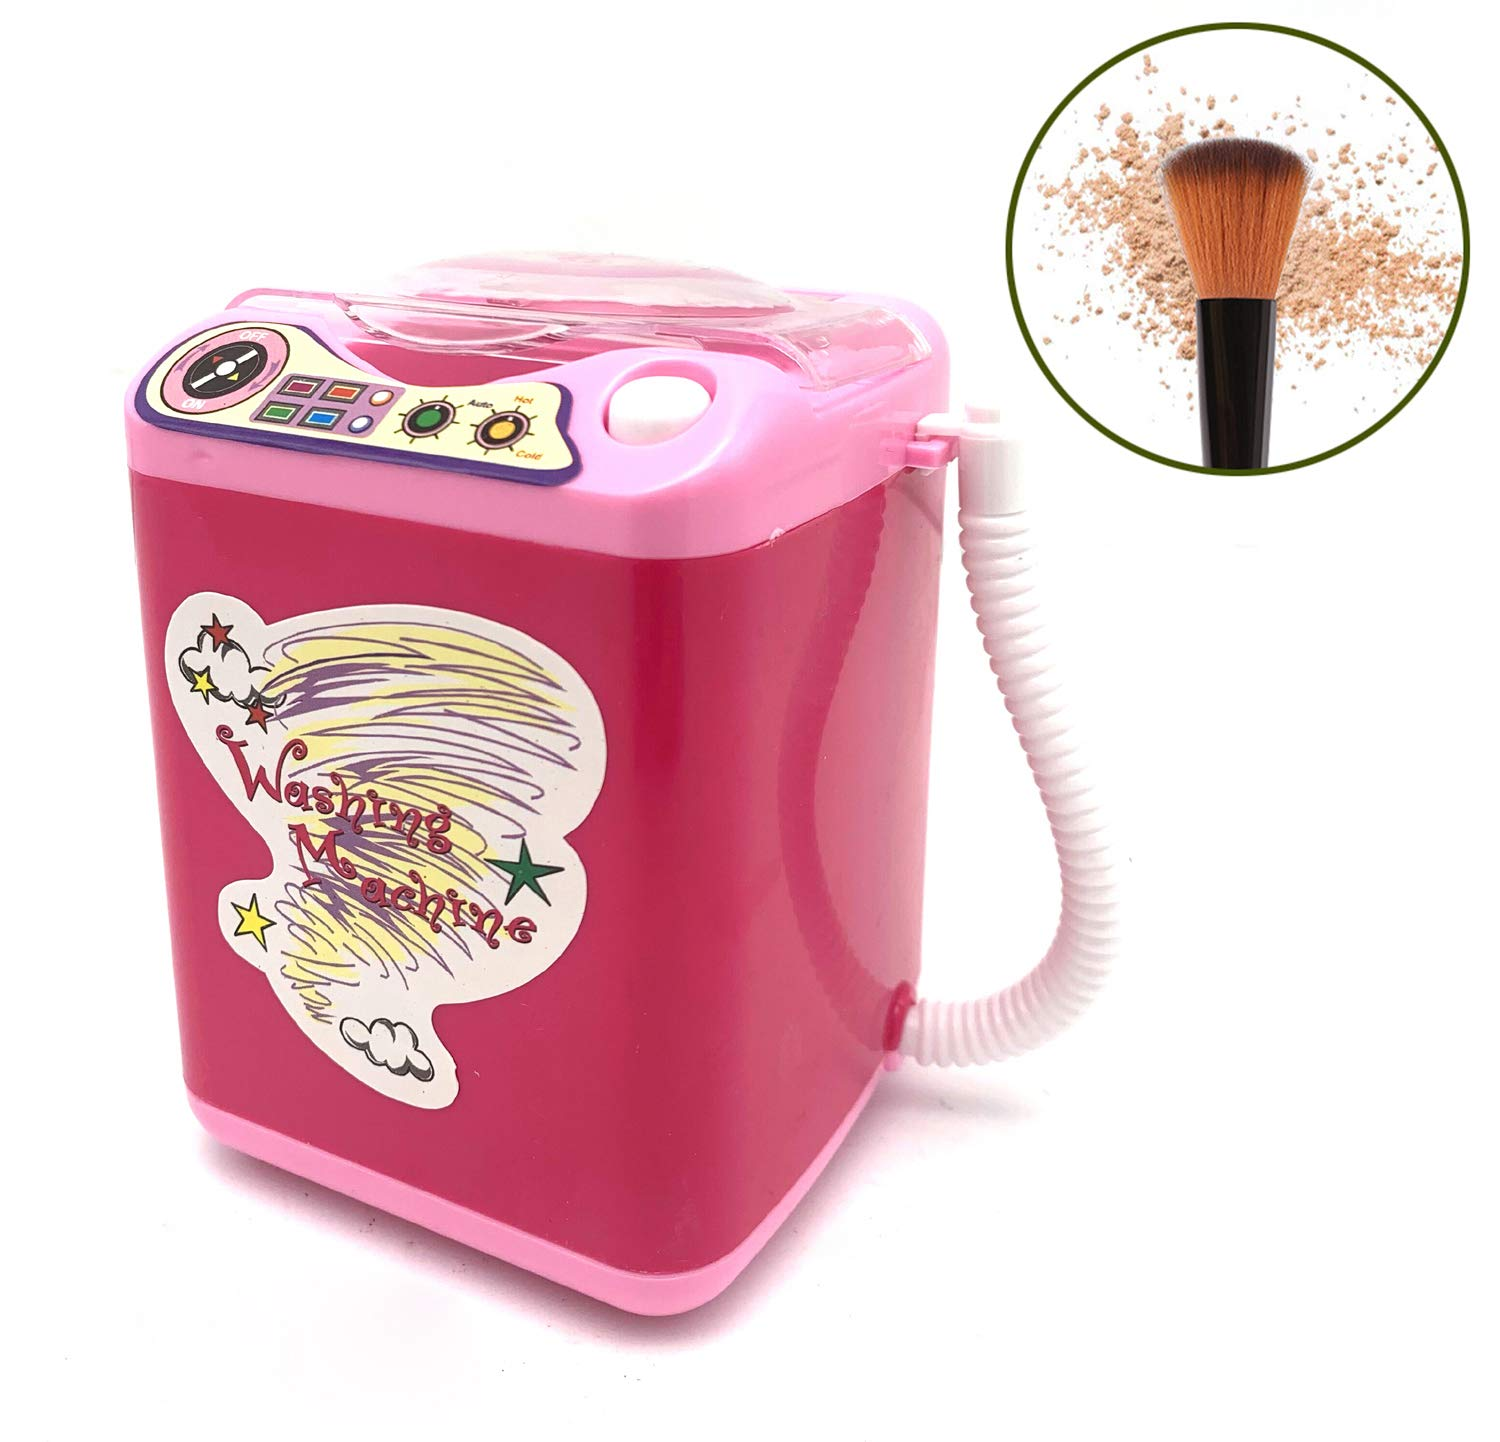 Wakaka Electric Makeup Brush Cleaner Spinner Machine - Electronic Mini Washing Machine Shape Automatic Makeup Brush Cleaner Dries Deep Cleaning Mini Toy